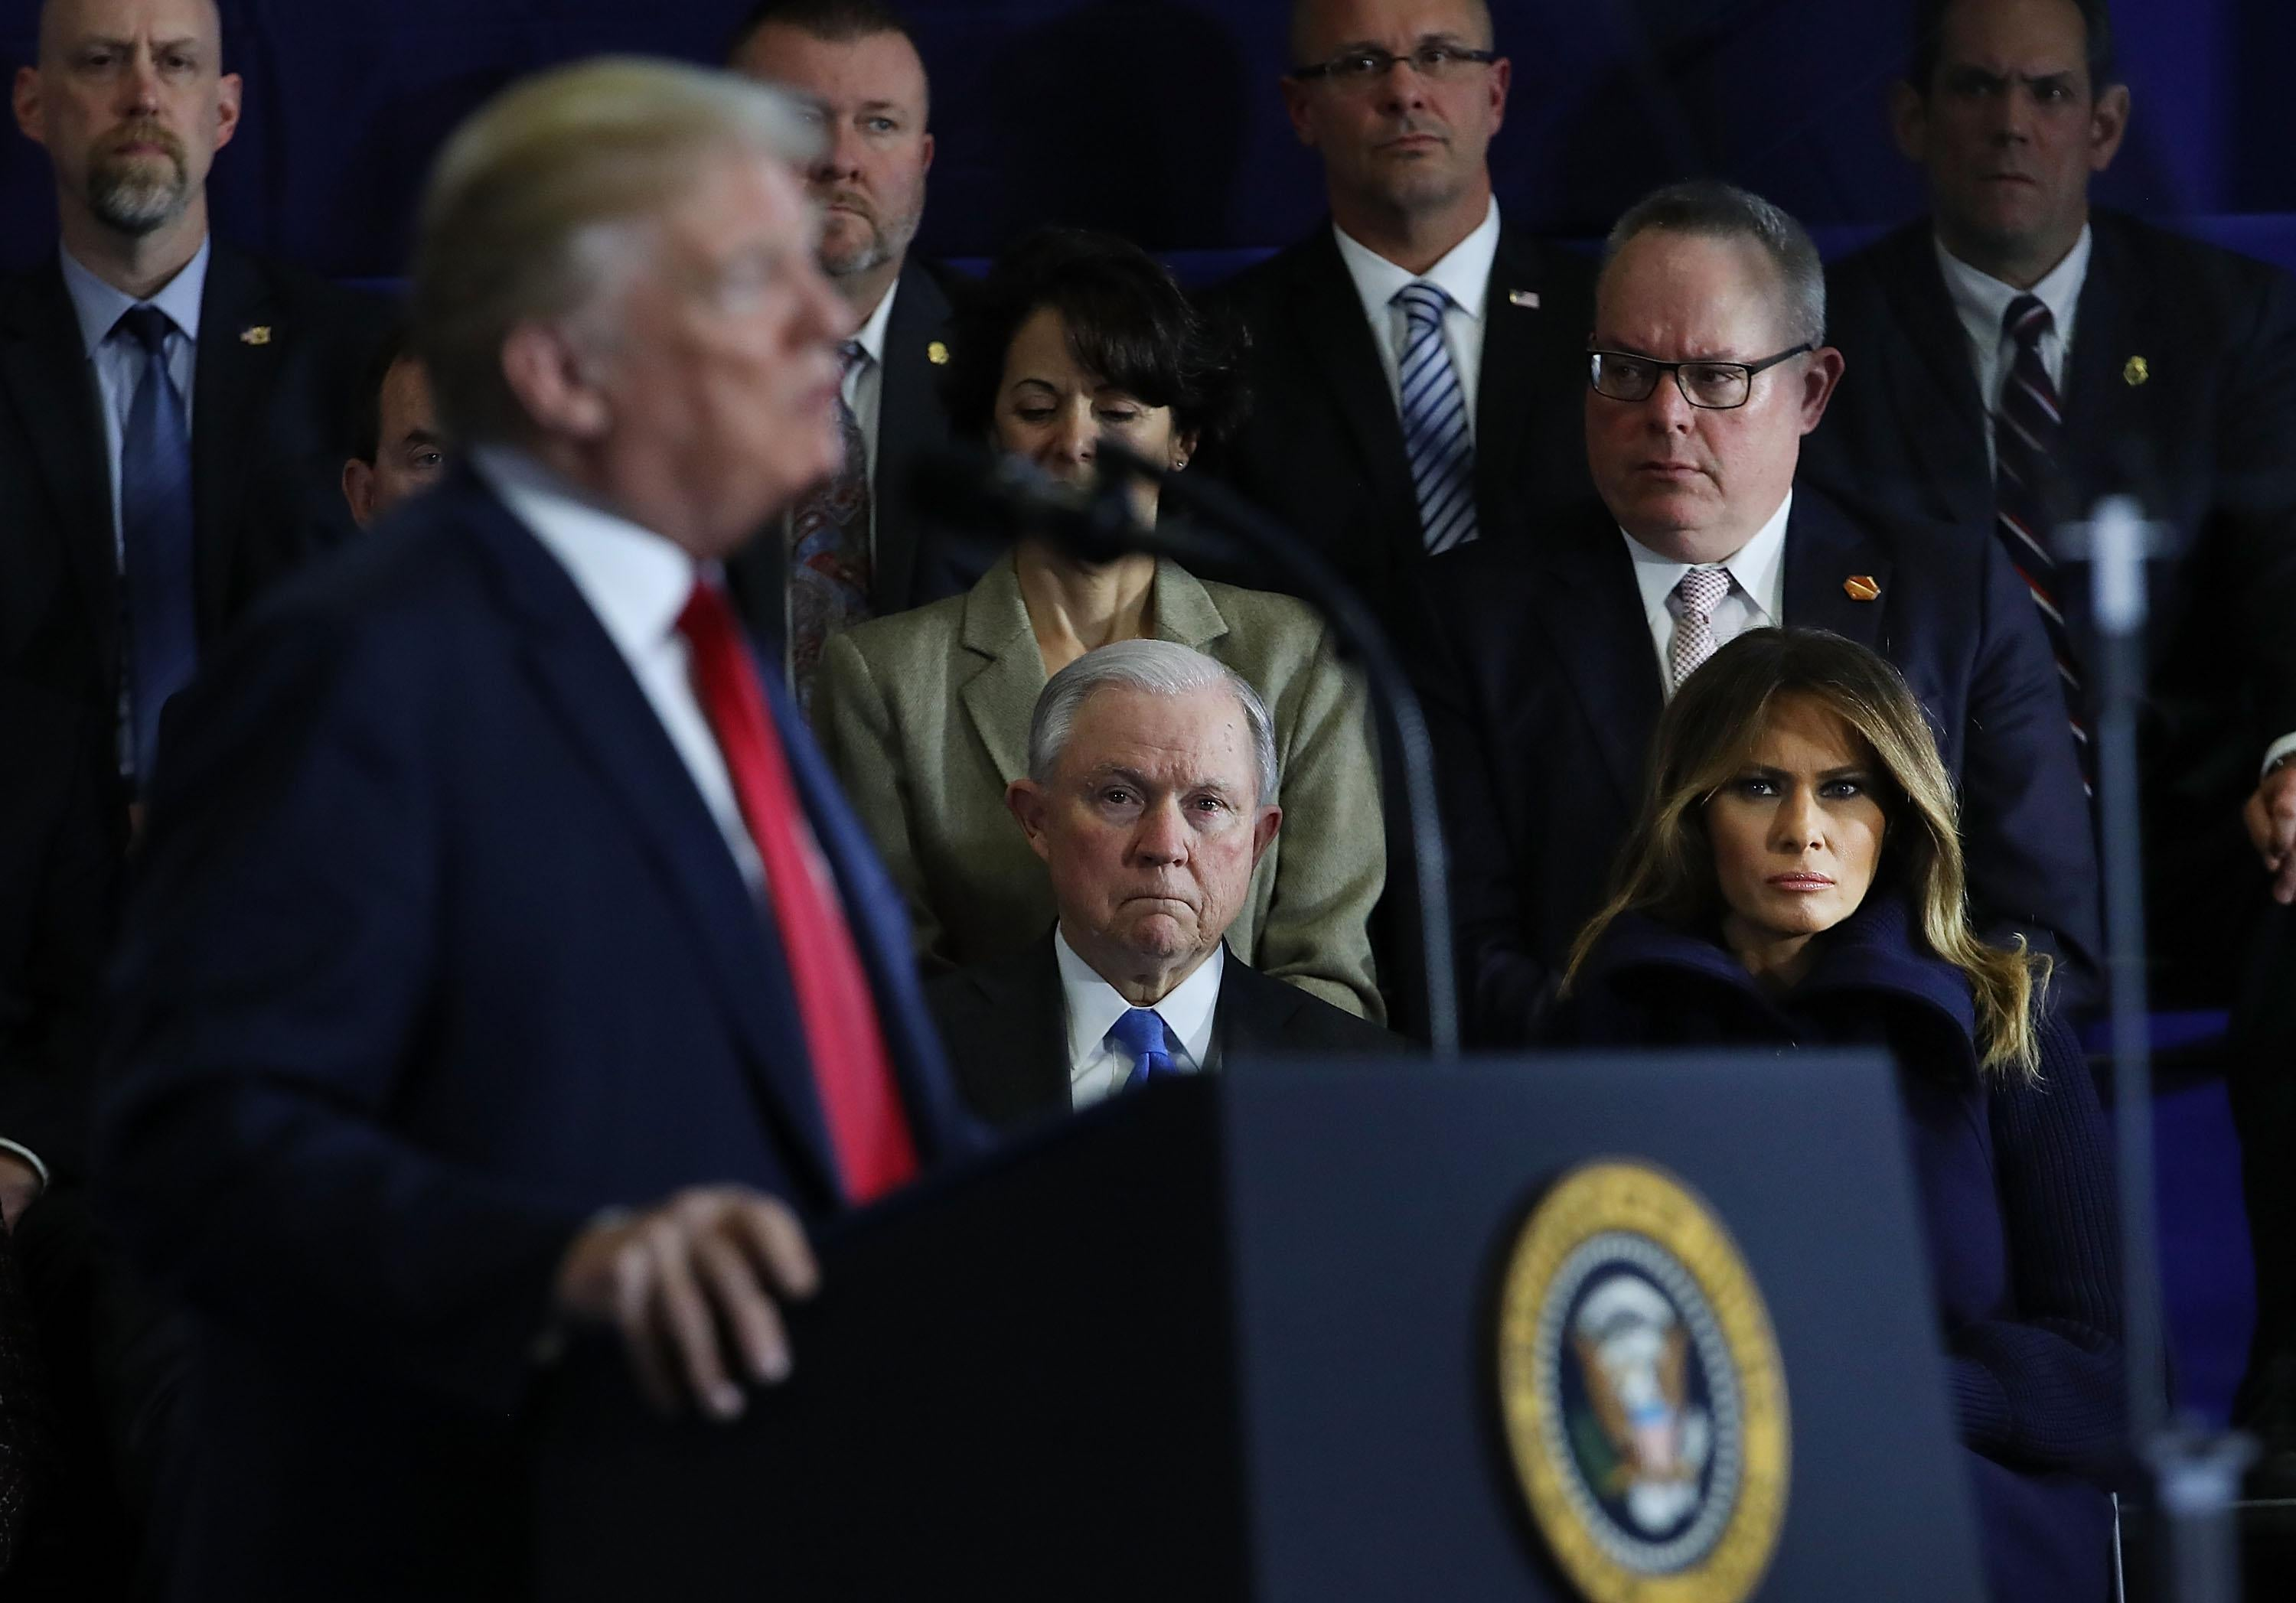 Attorney General Jeff Sessions watches as President Donald Trump speaks to supporters, local politicians and police officers at an event at Manchester Community College on March 19, 2018 in Manchester, New Hampshire.